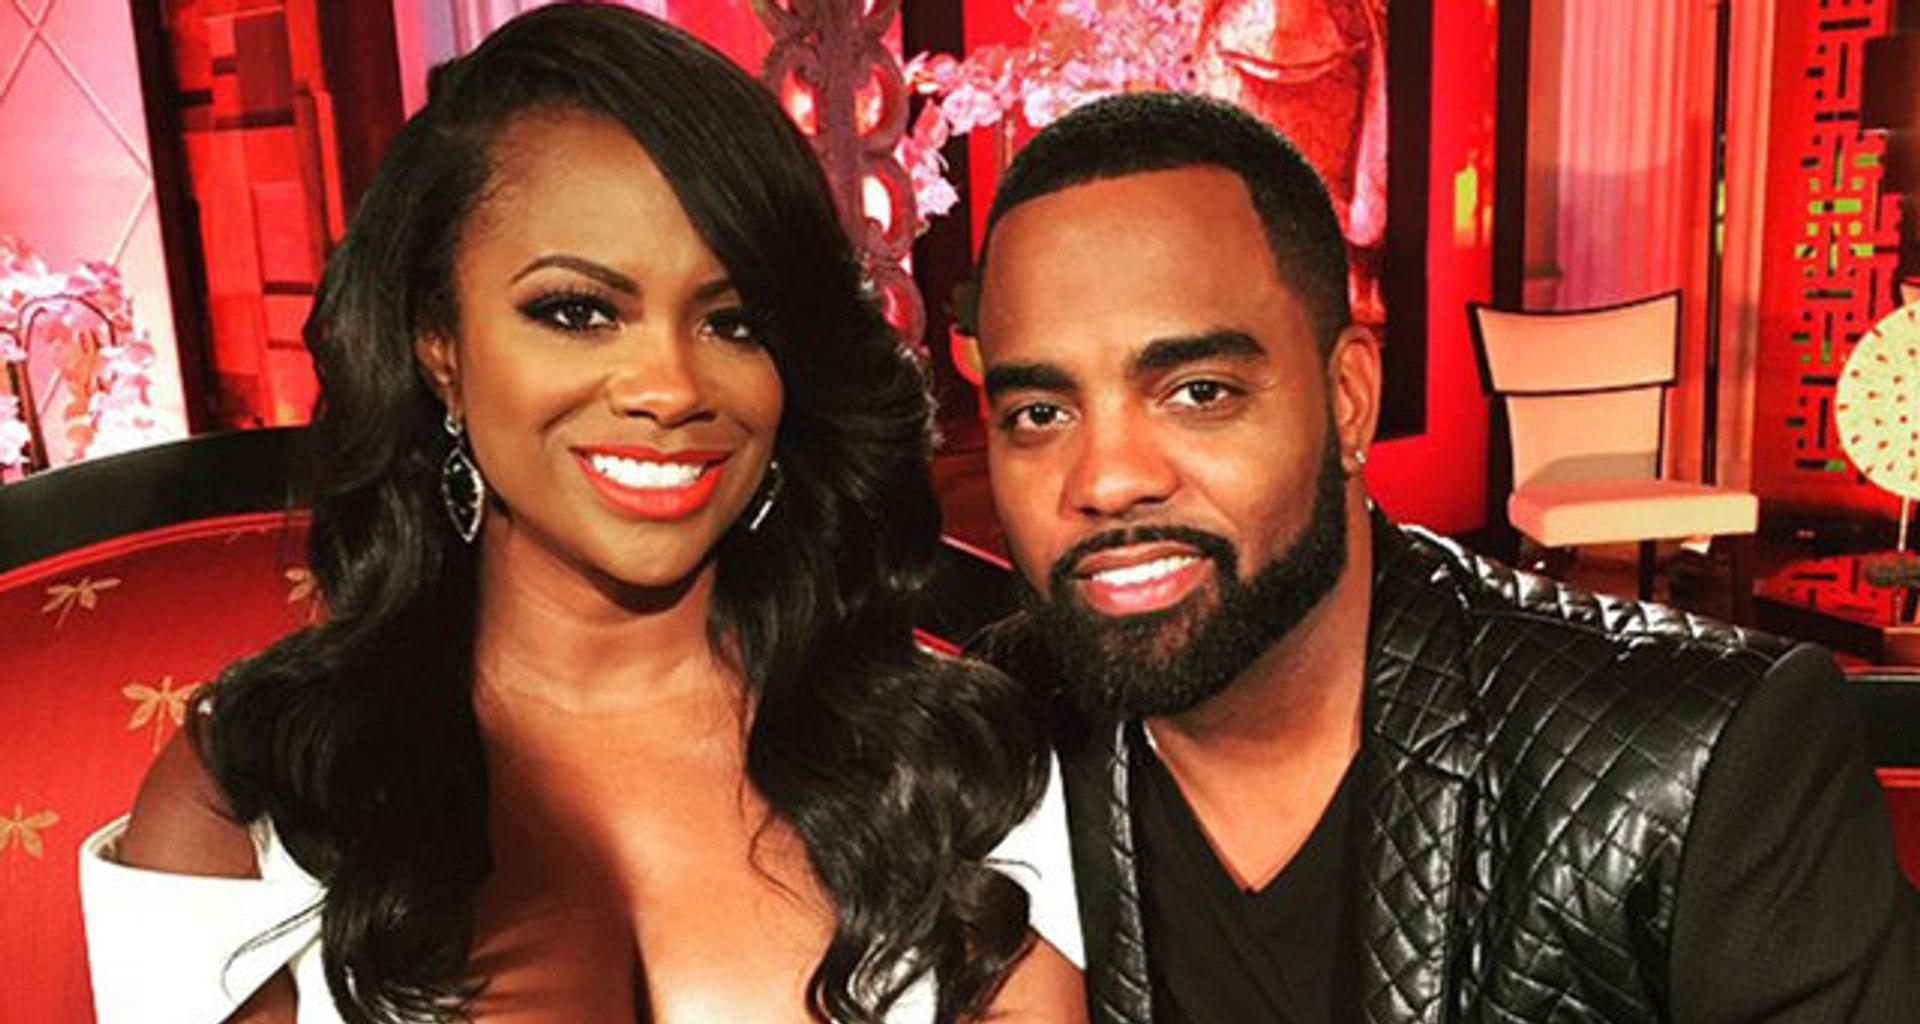 Kandi Burruss And Todd Tucker Are Gorgeous In White And Some Fans Call Them 'Power Couple'